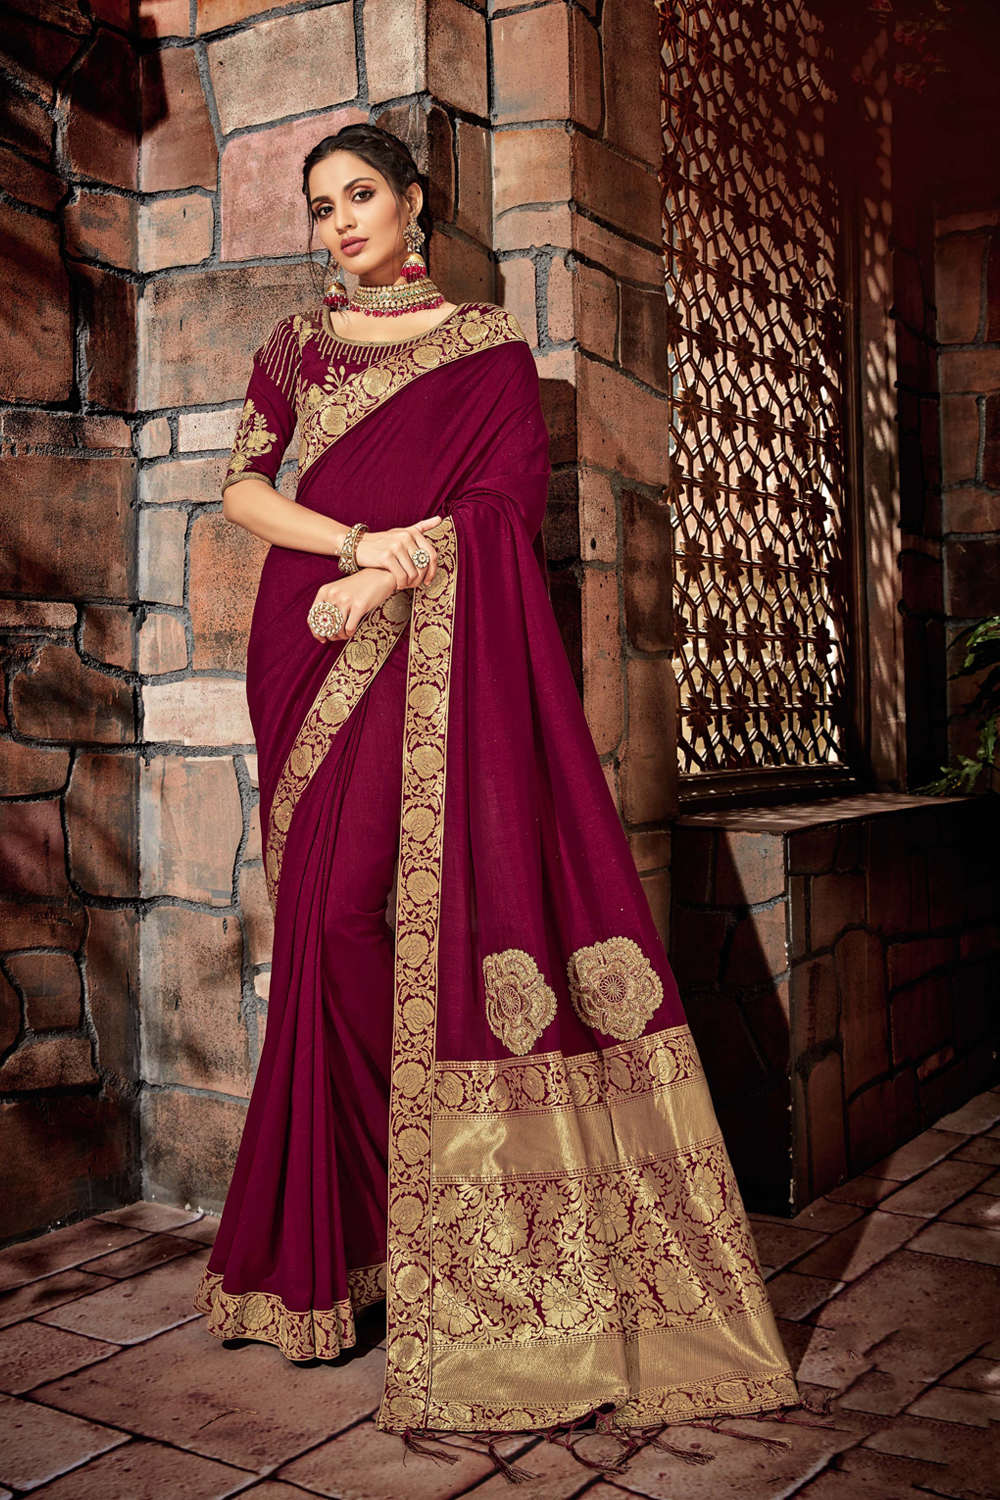 Magnificent wine and fabricated in golden motifs saree